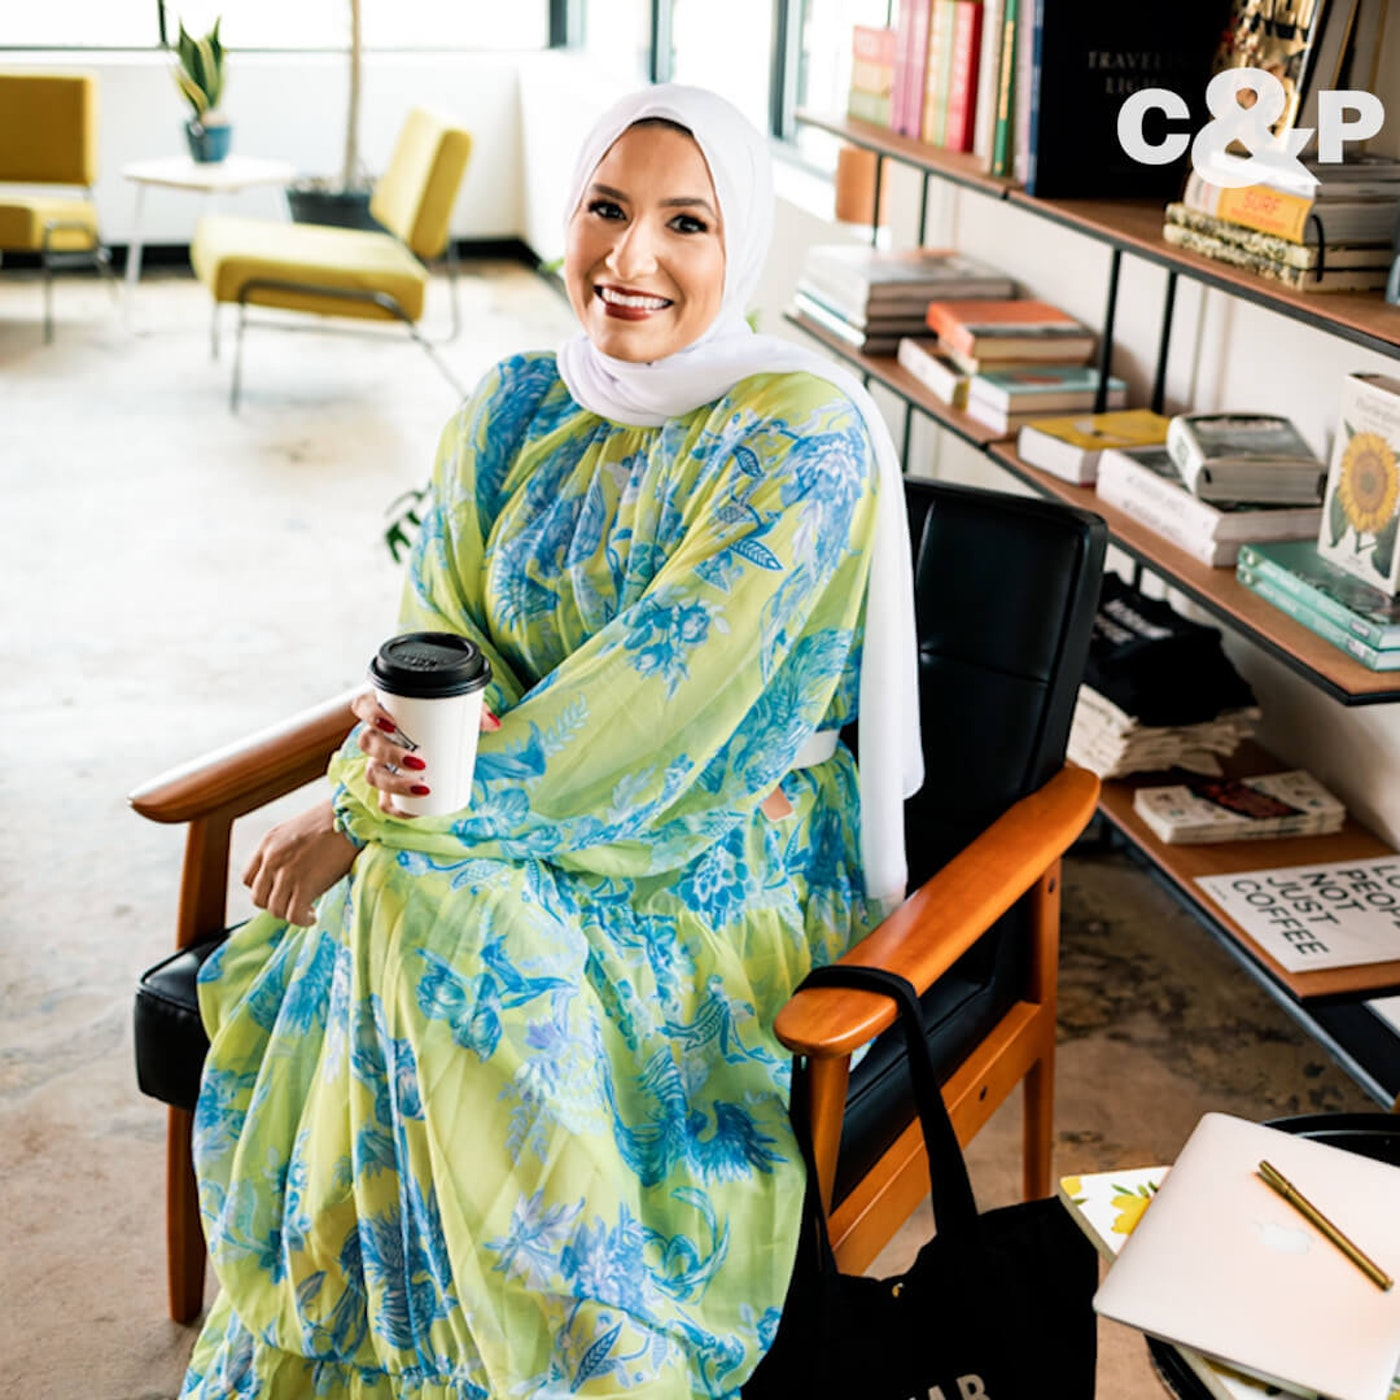 The pandemic has upended Ramadan for the second year in a row. Stylist Lamia Ashour of Charlotte tells us how she's adapting.